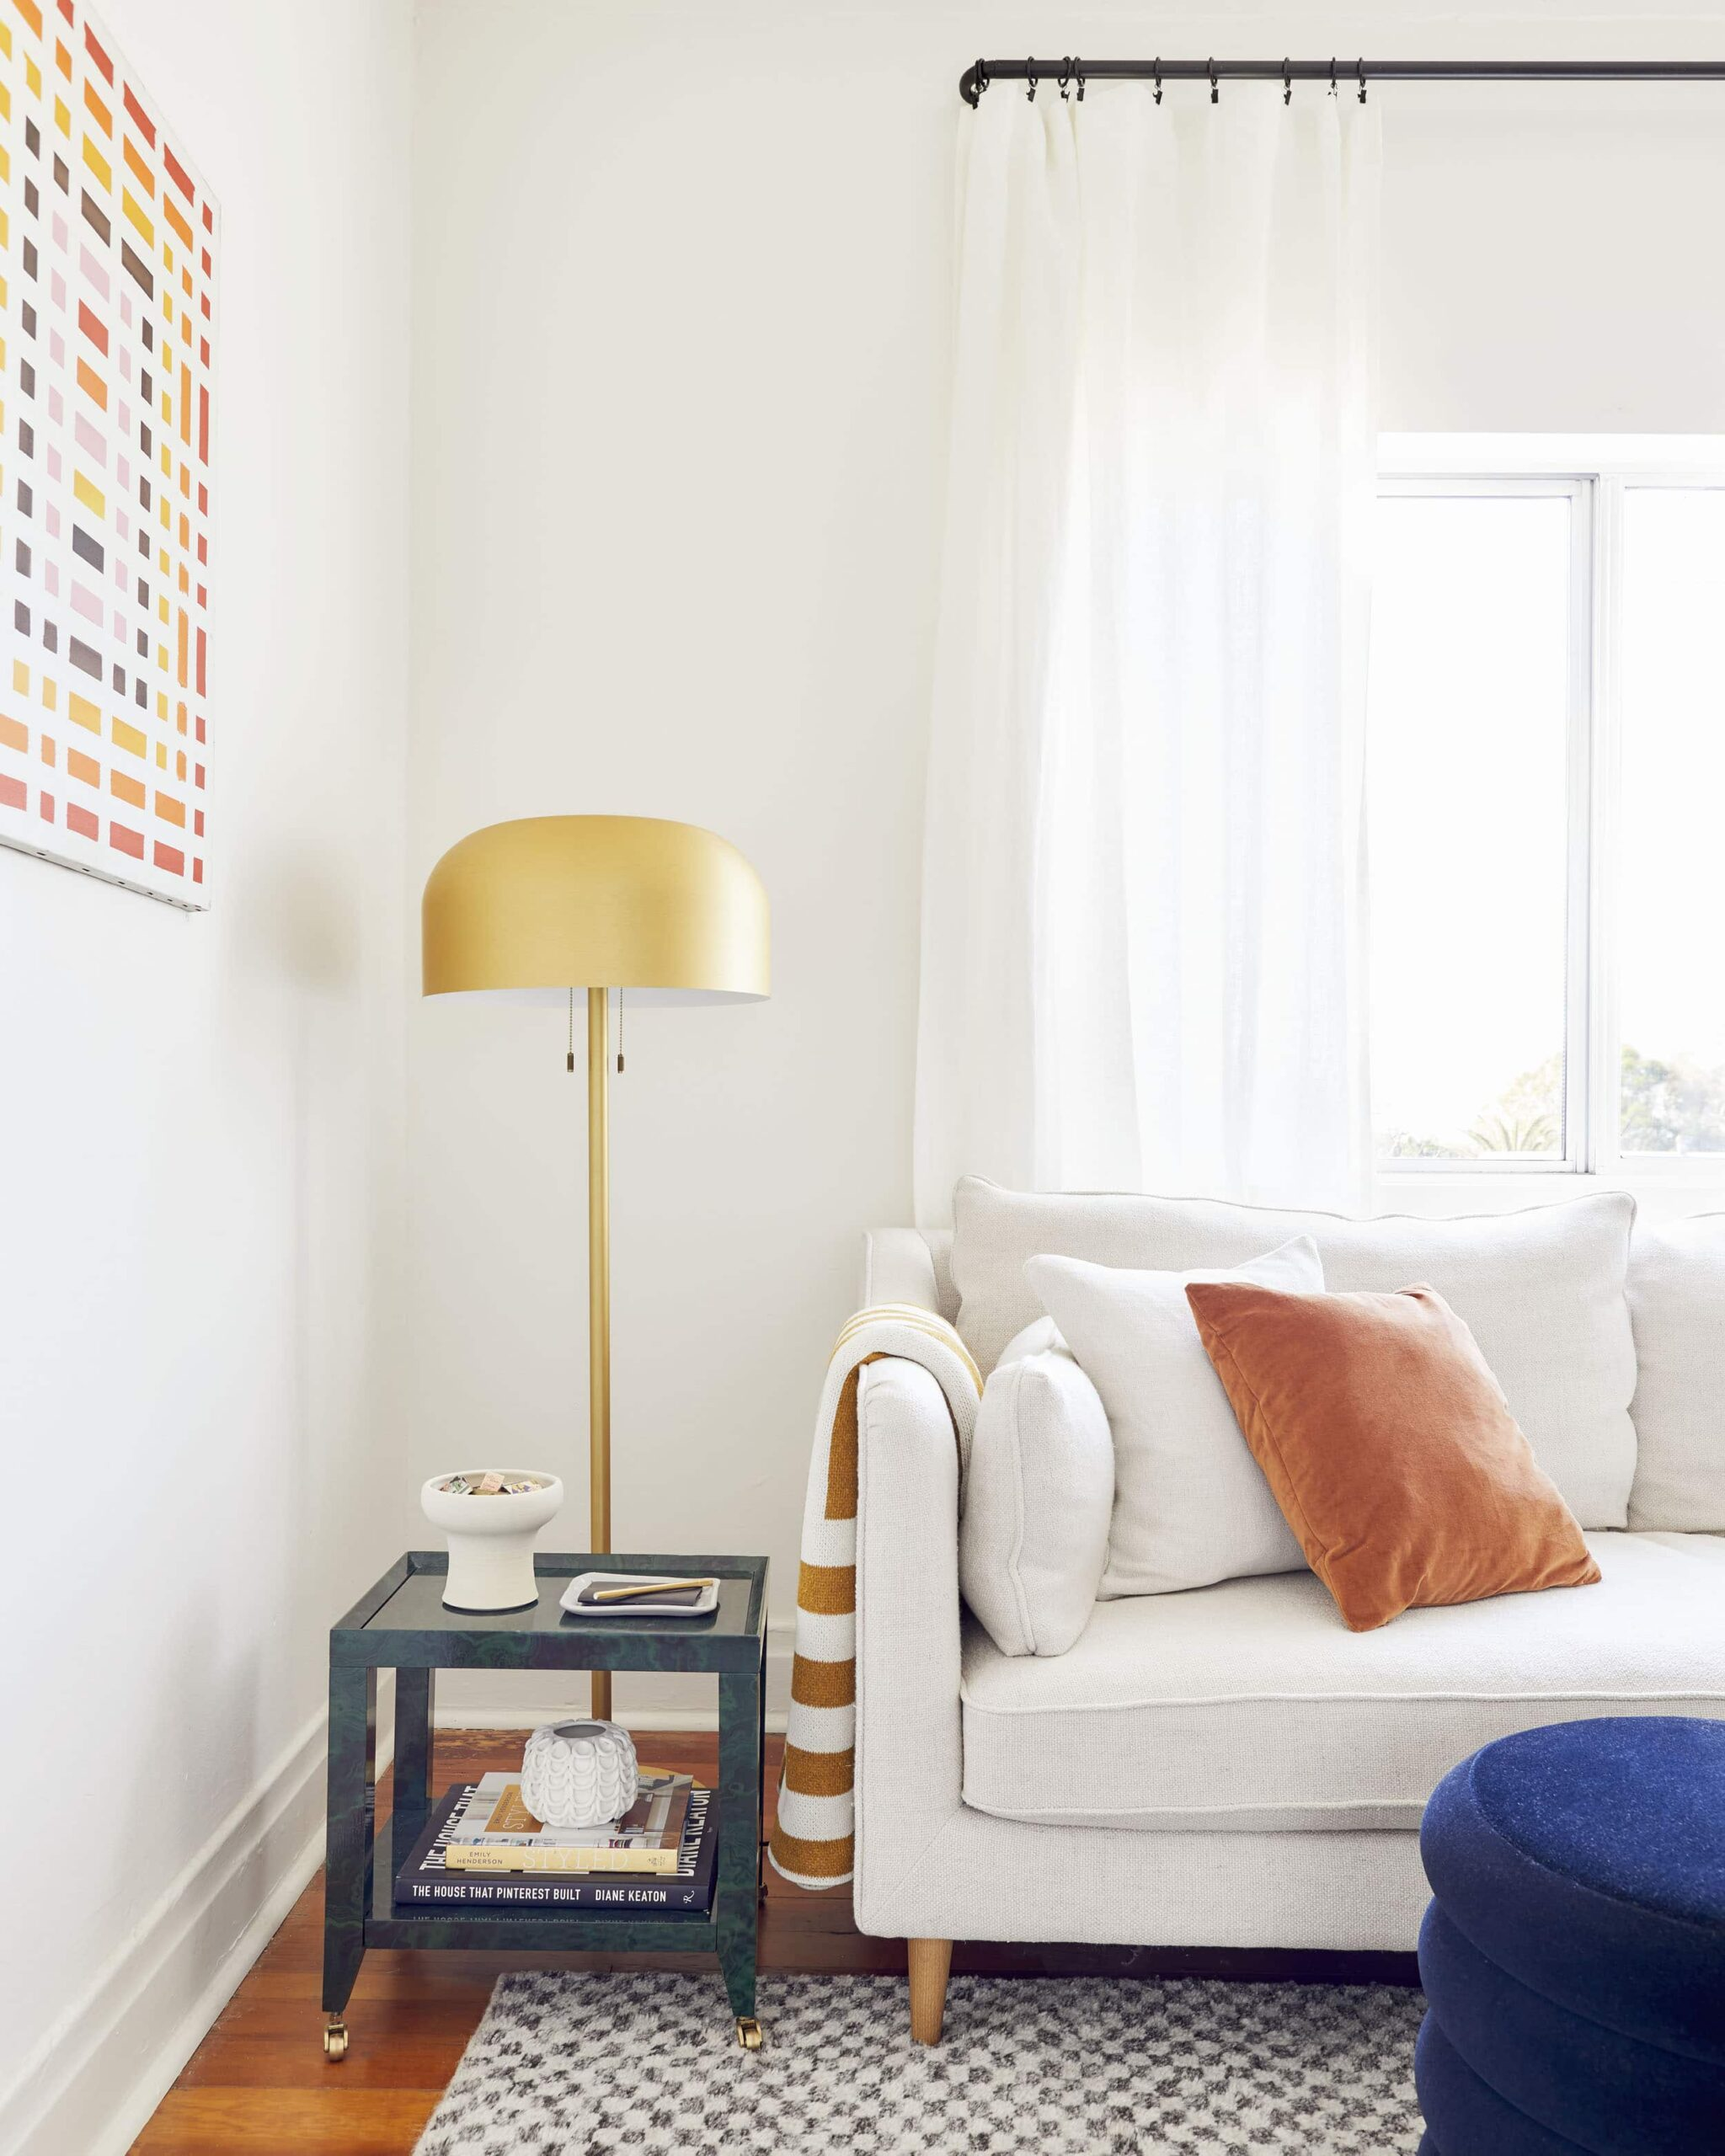 Best Warm White Paint Colors - Farrow and Ball - IMAGE: photo by Sara Ligorria-Tramp for EHD via Emily Henderson feat. paint color 'Pointing' from Farrow and Ball